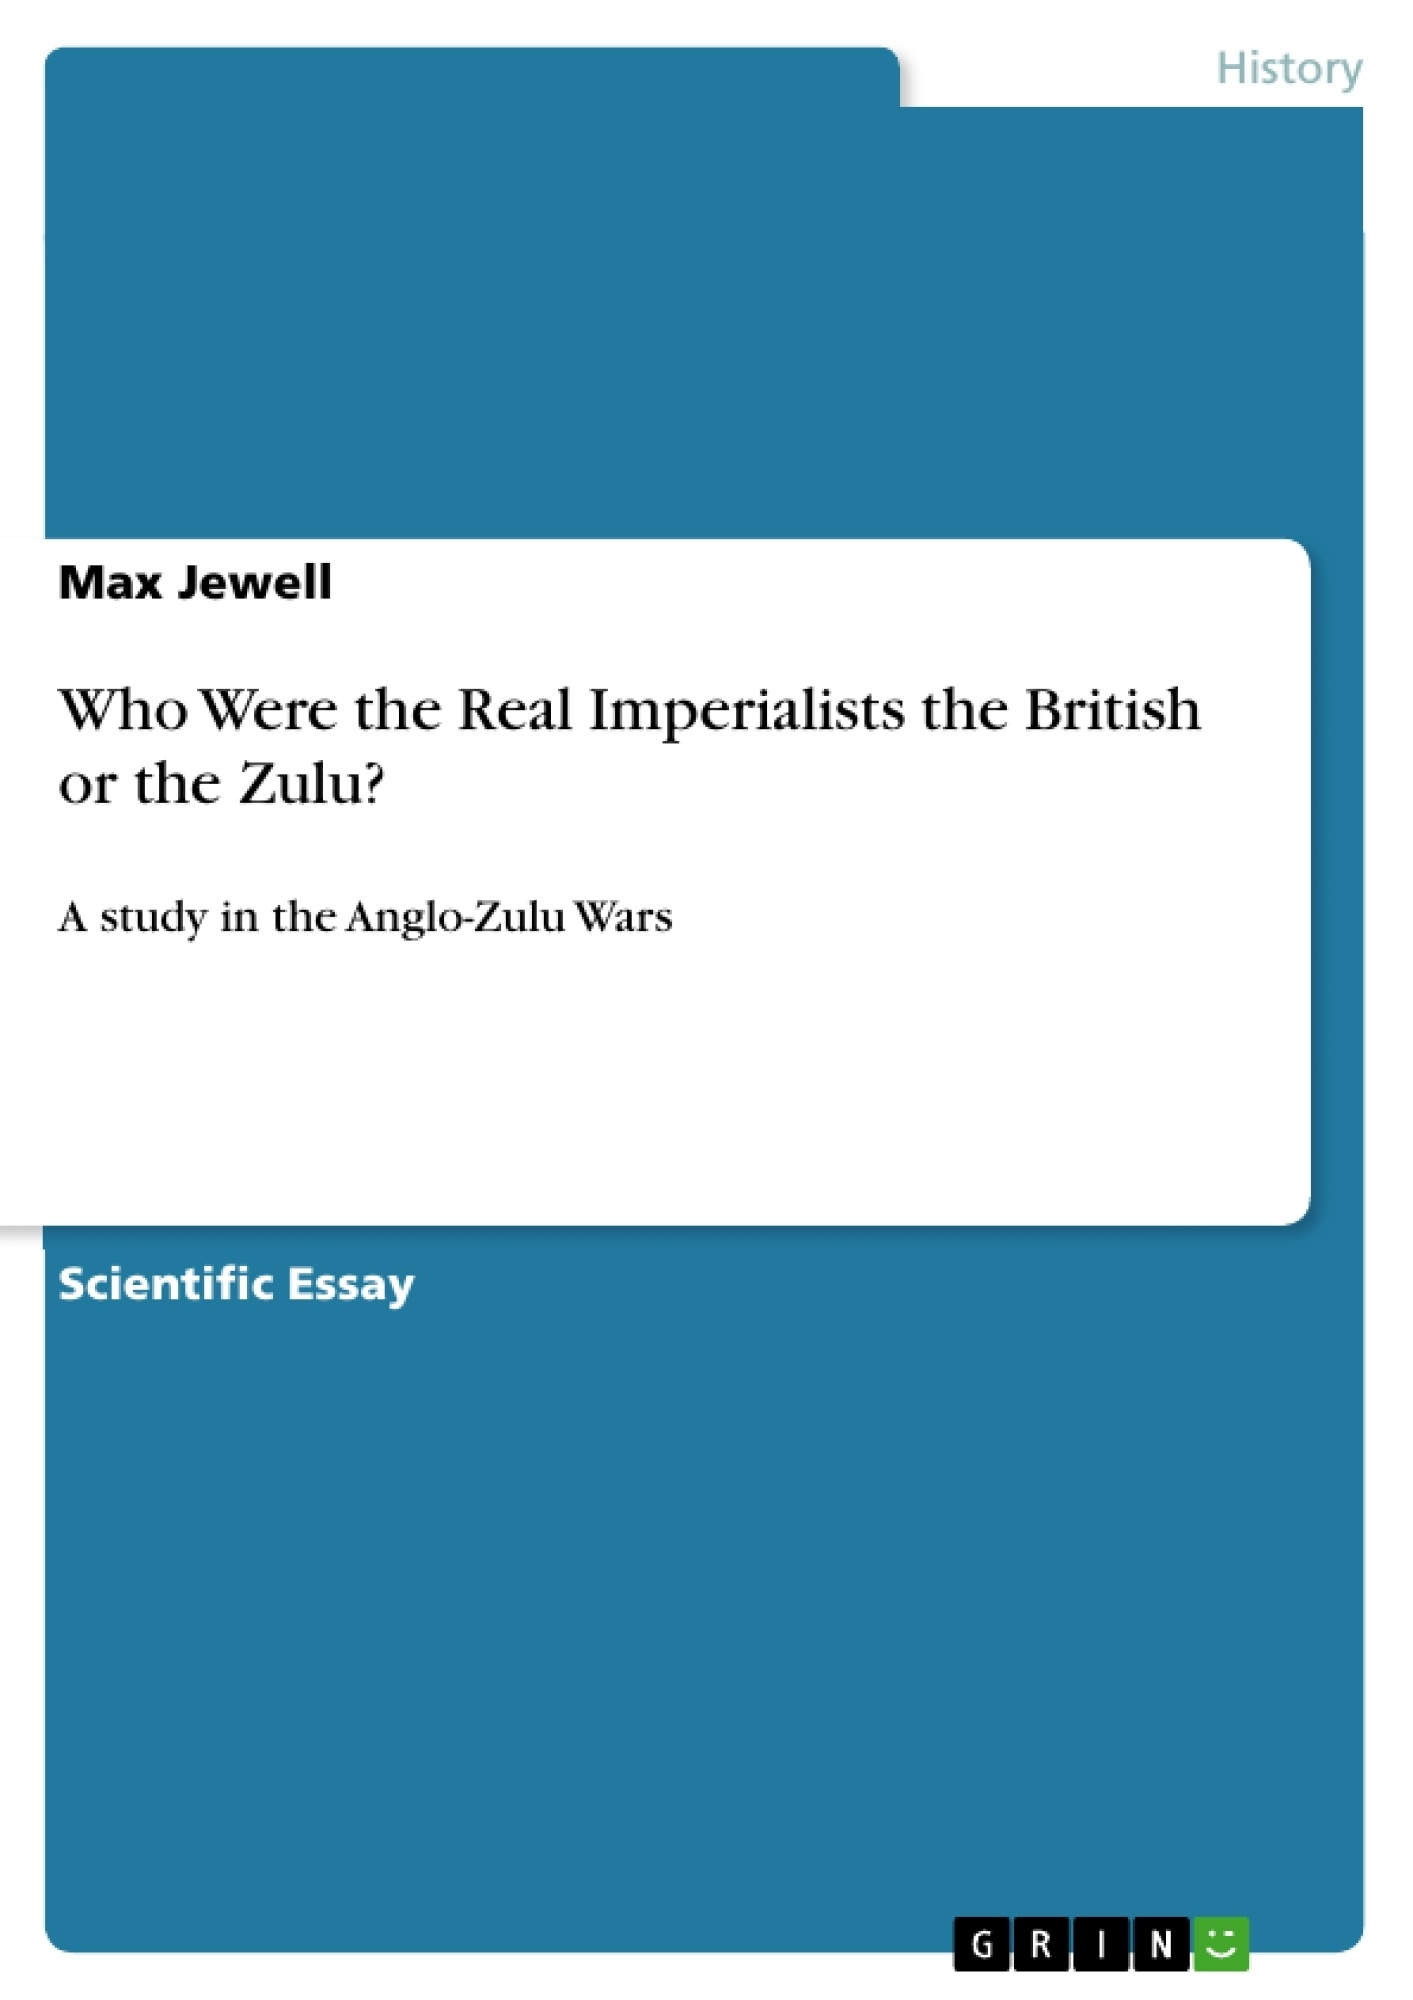 Title: Who Were the Real Imperialists the British or the Zulu?